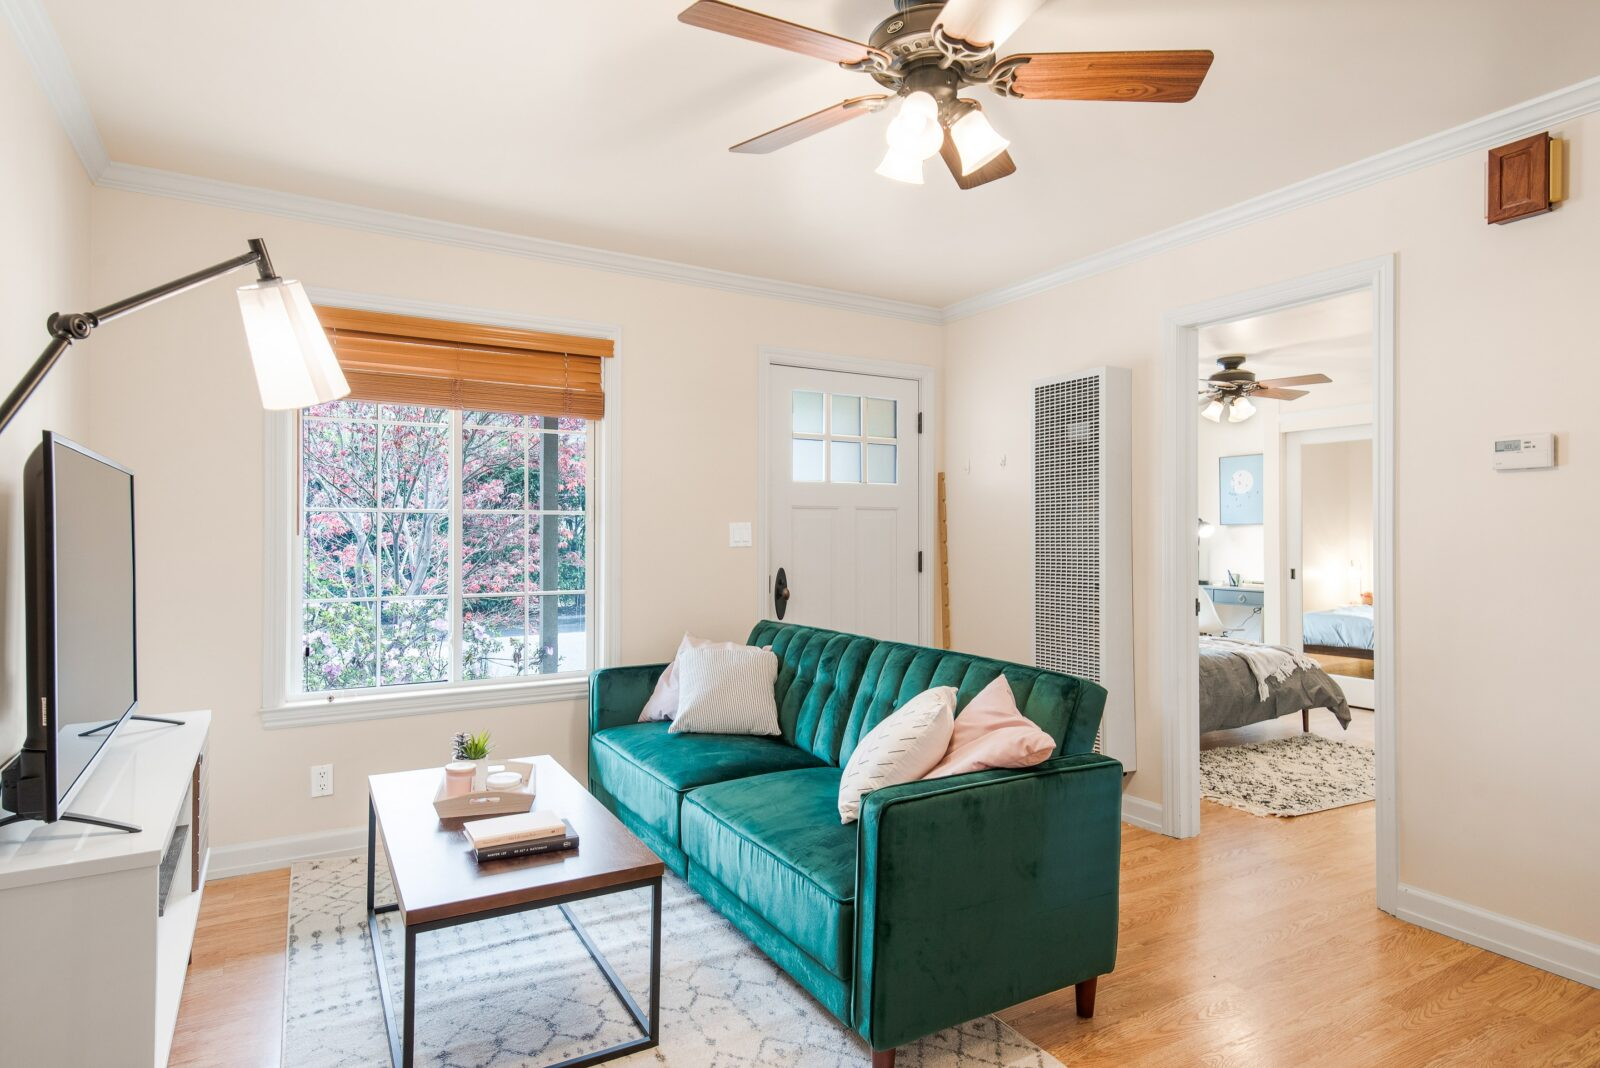 living room with a green couch and fan on the ceiling